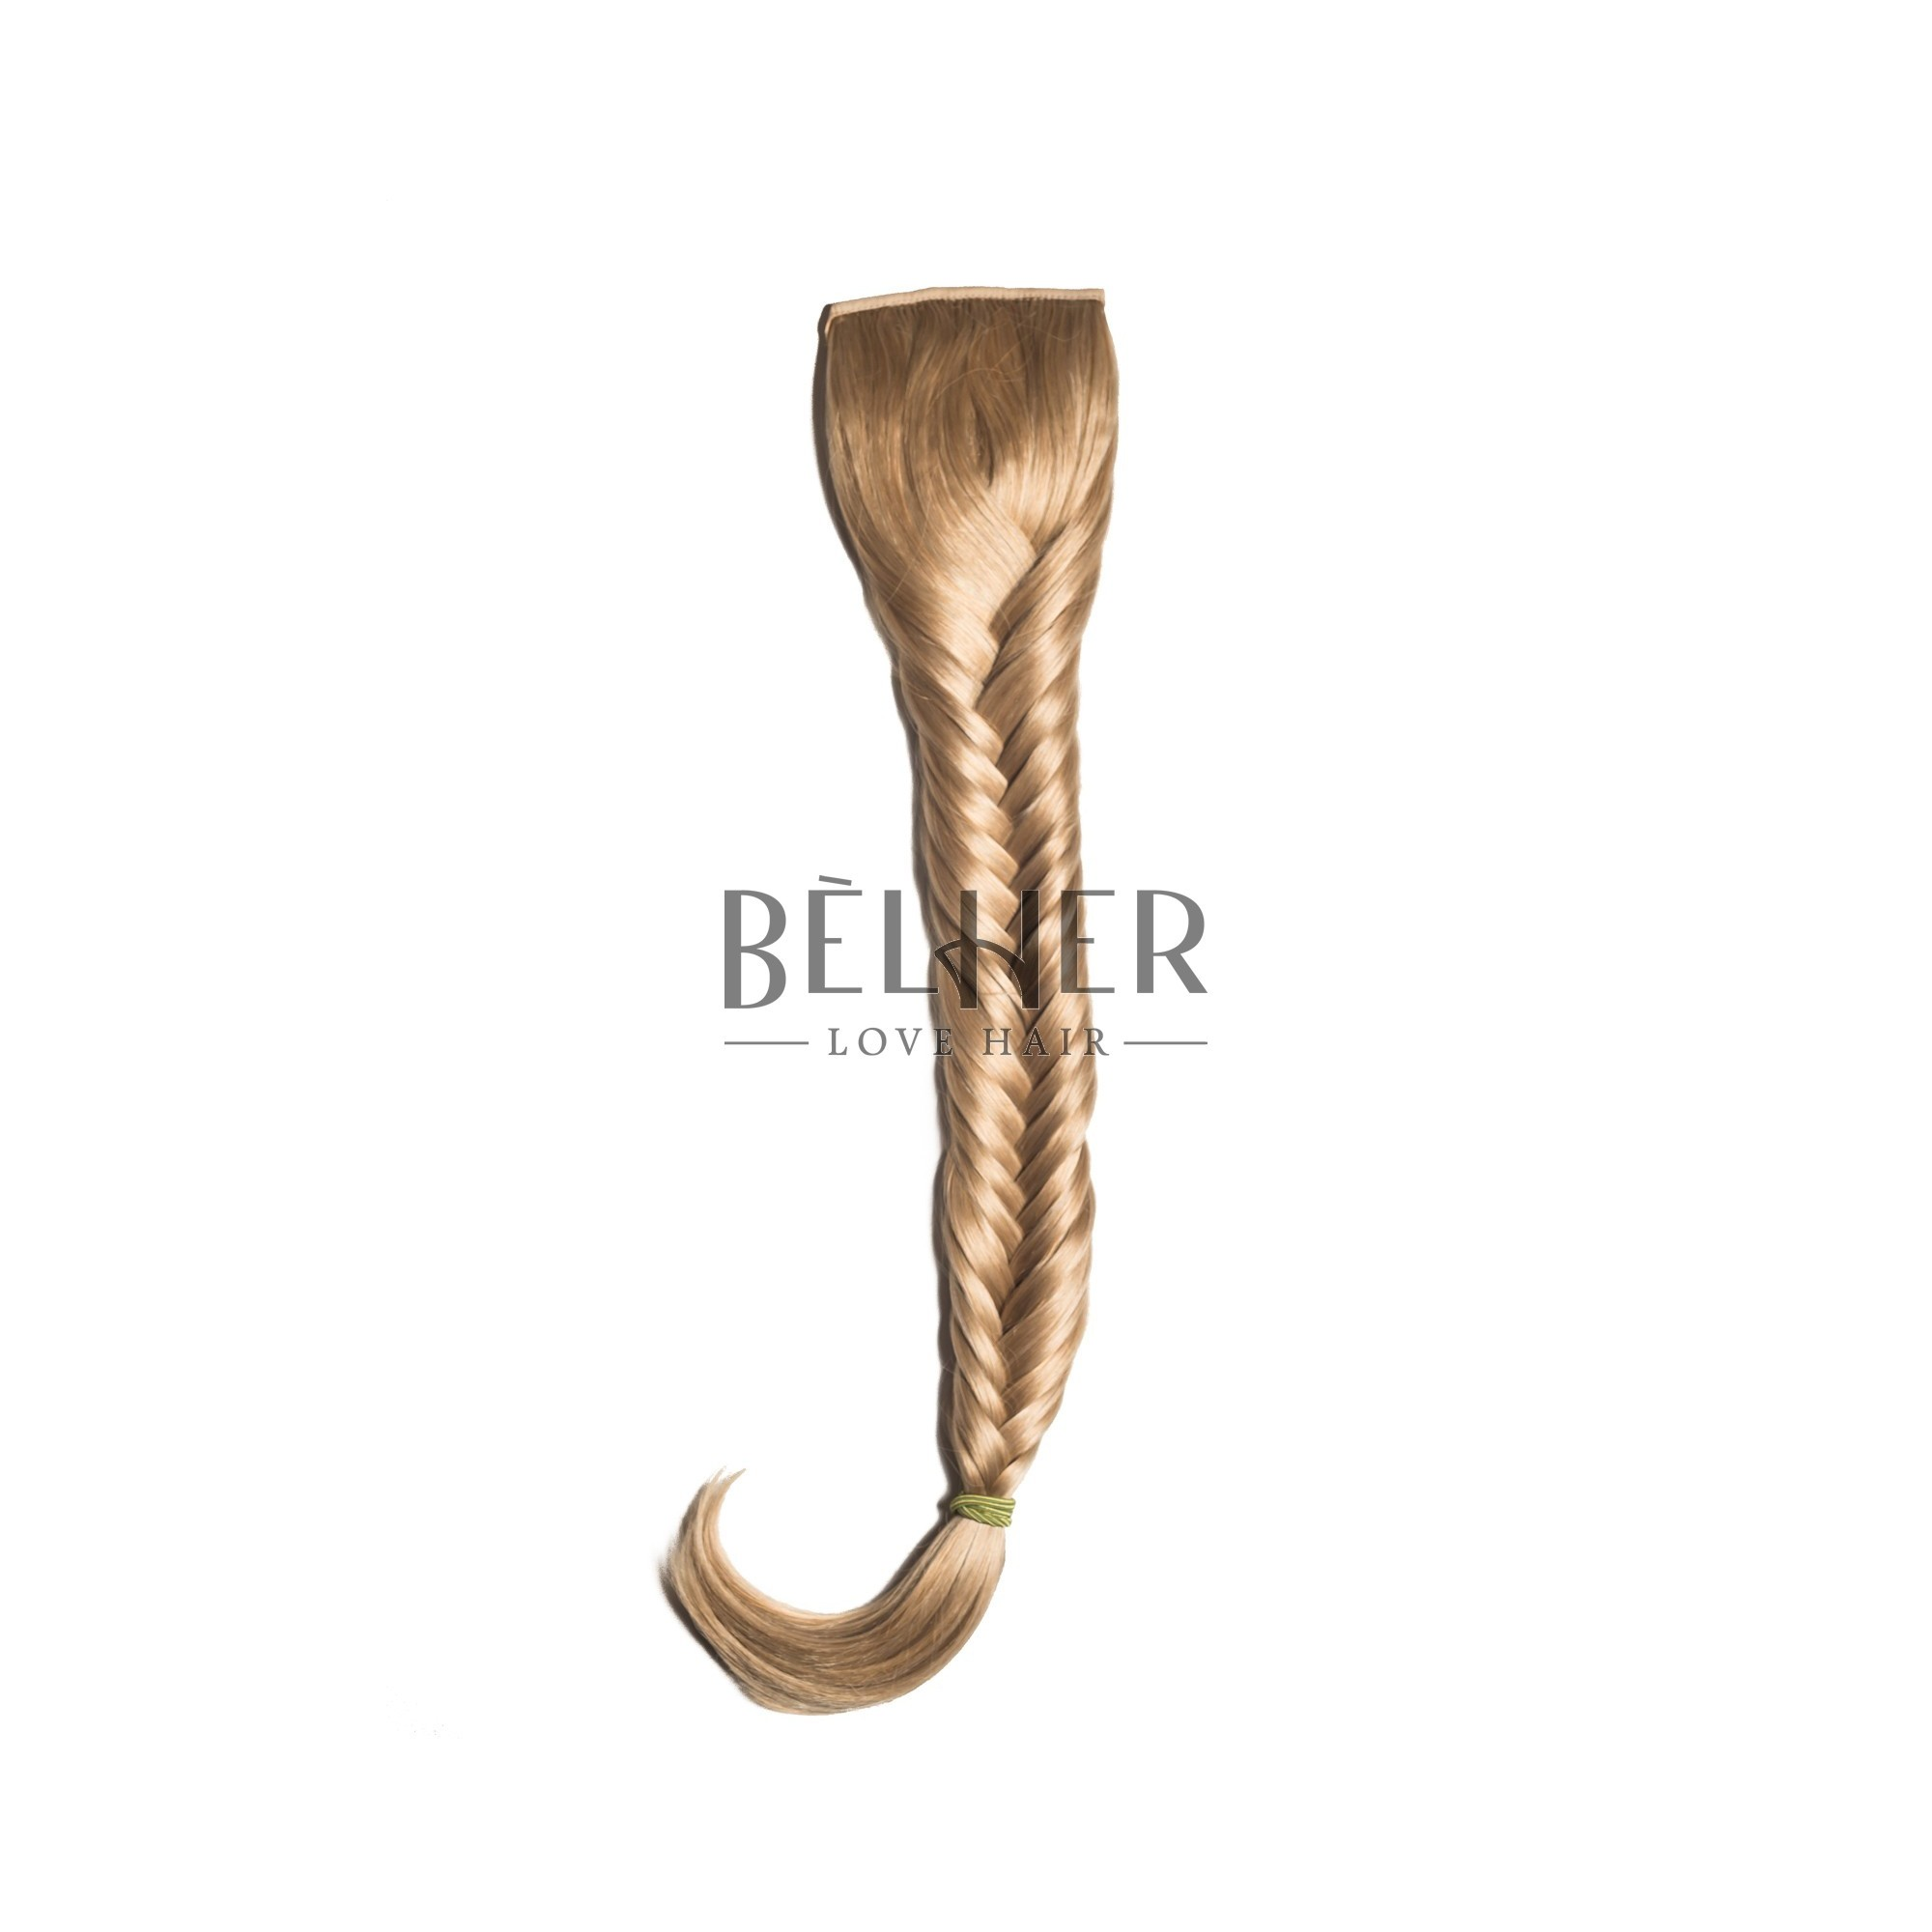 Coada Par Impletit Blond Auriu